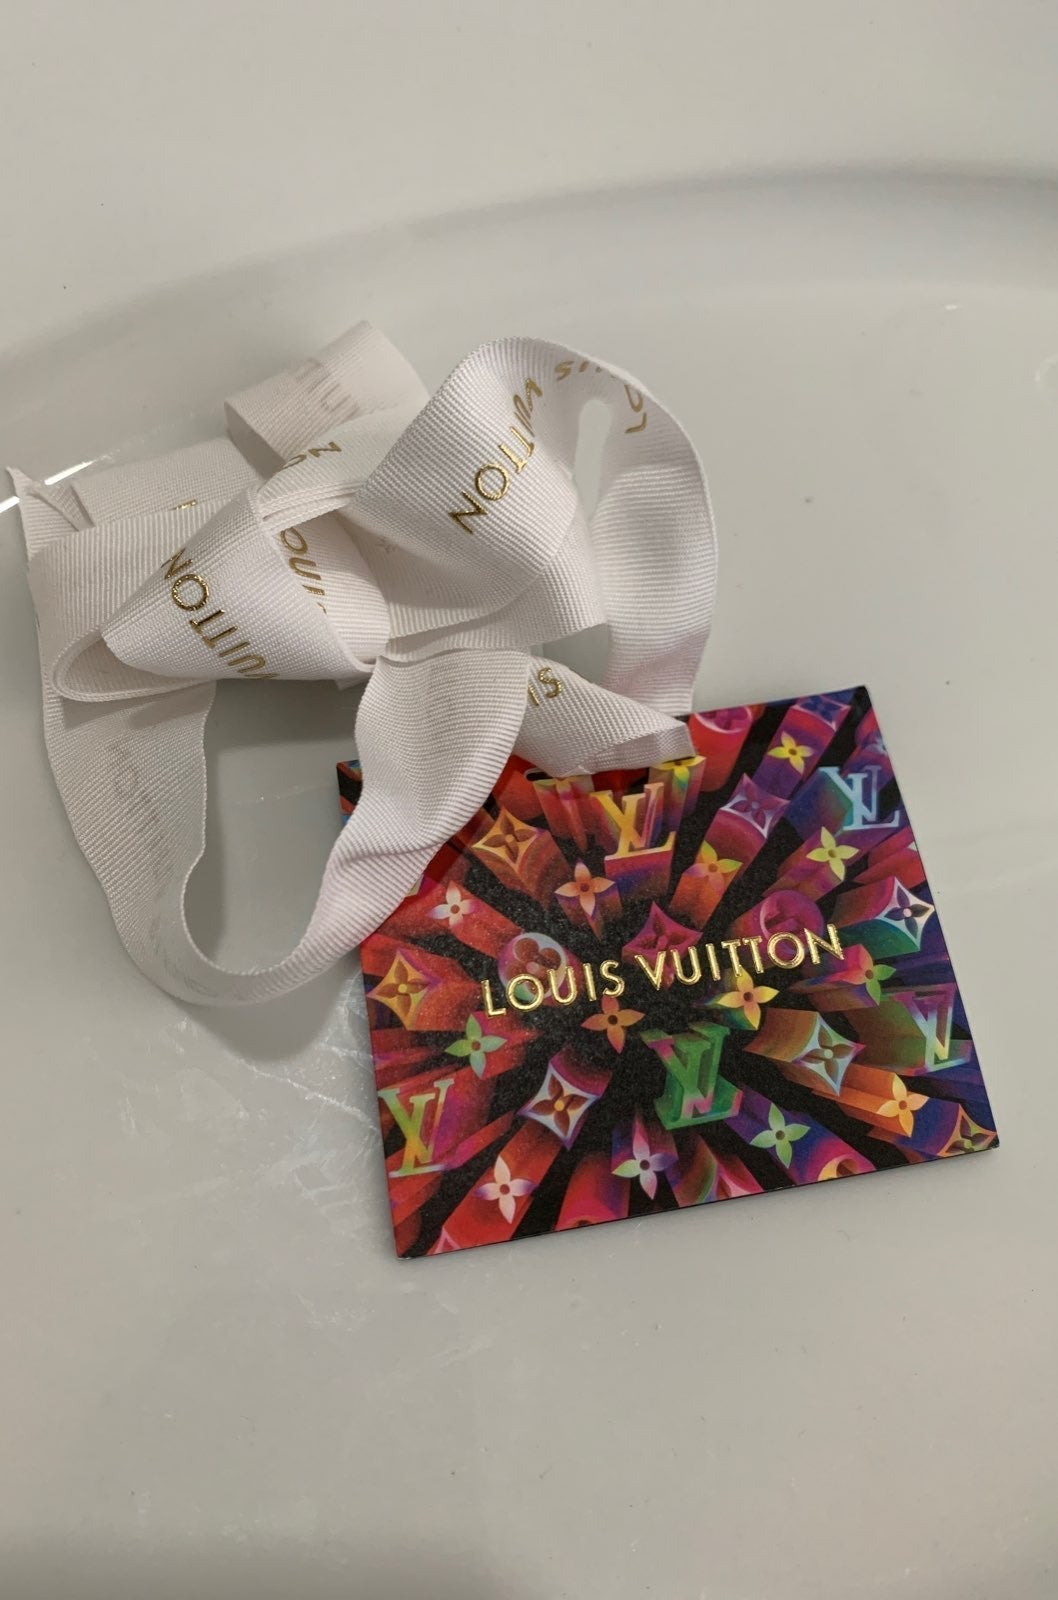 Louis vuitton rare holiday tag ribbon